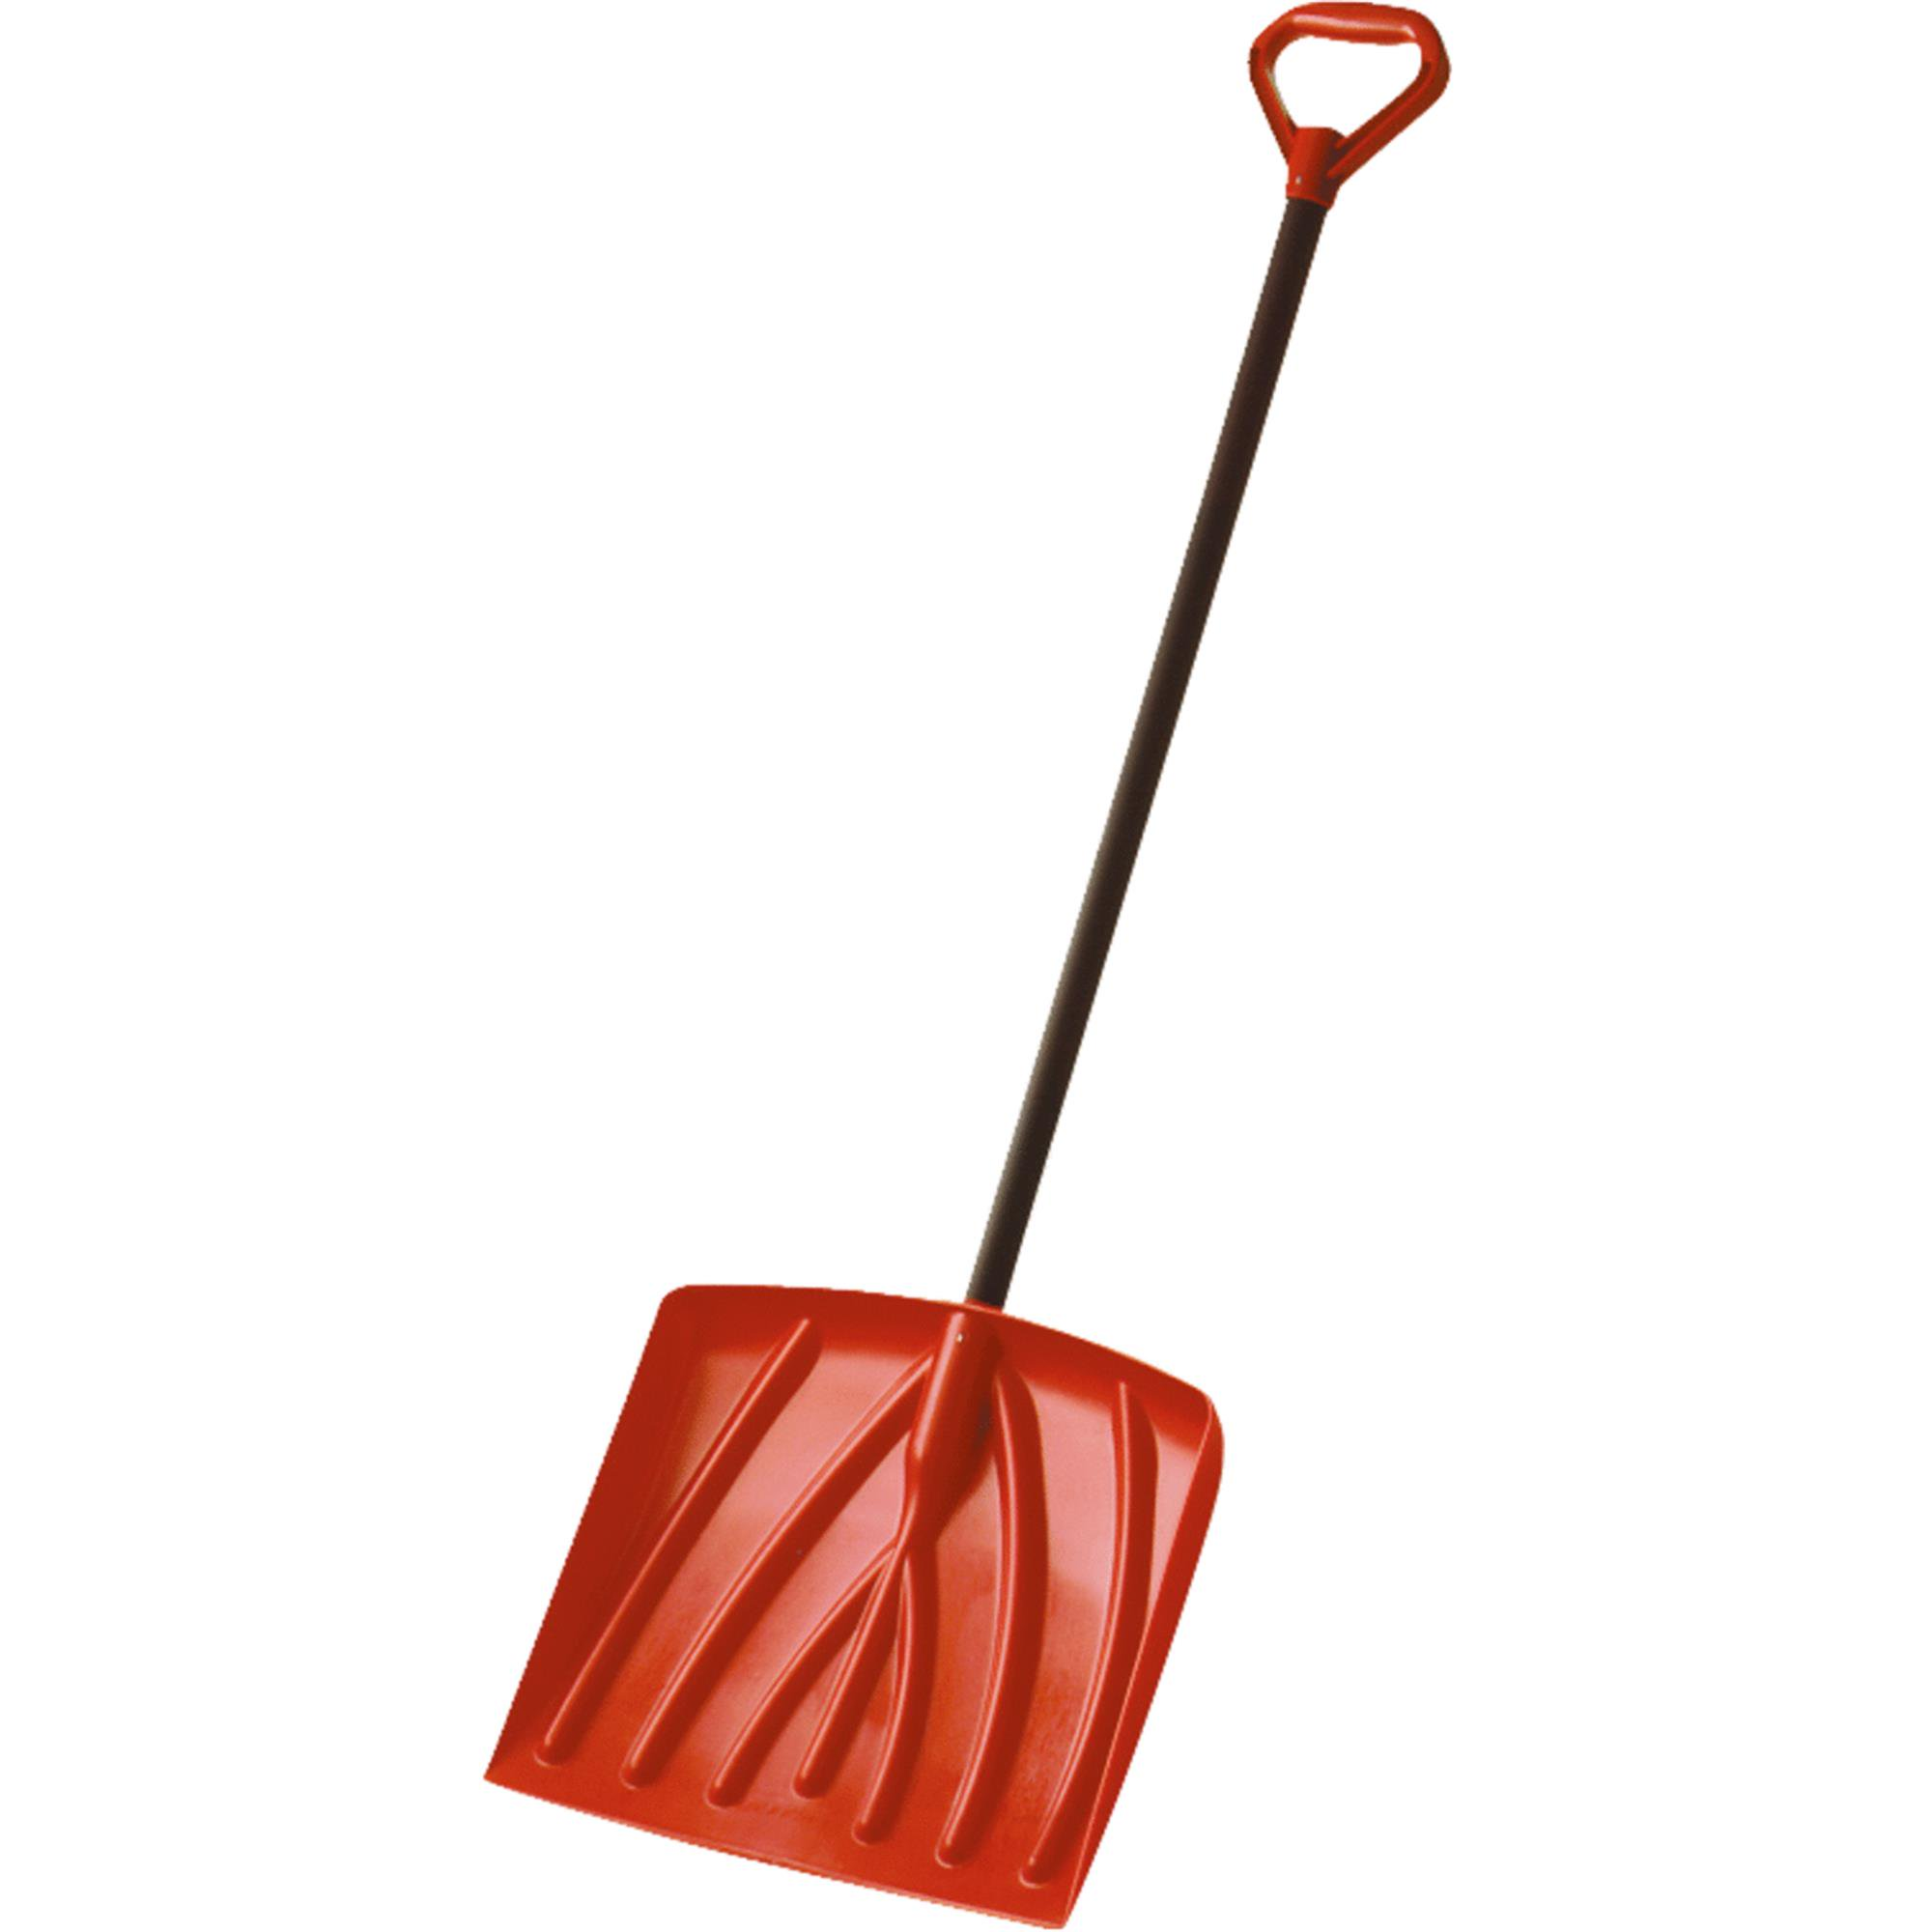 Suncast SK4000 Kid's Snow Shovel with Bright Red Resin Blade by Generic